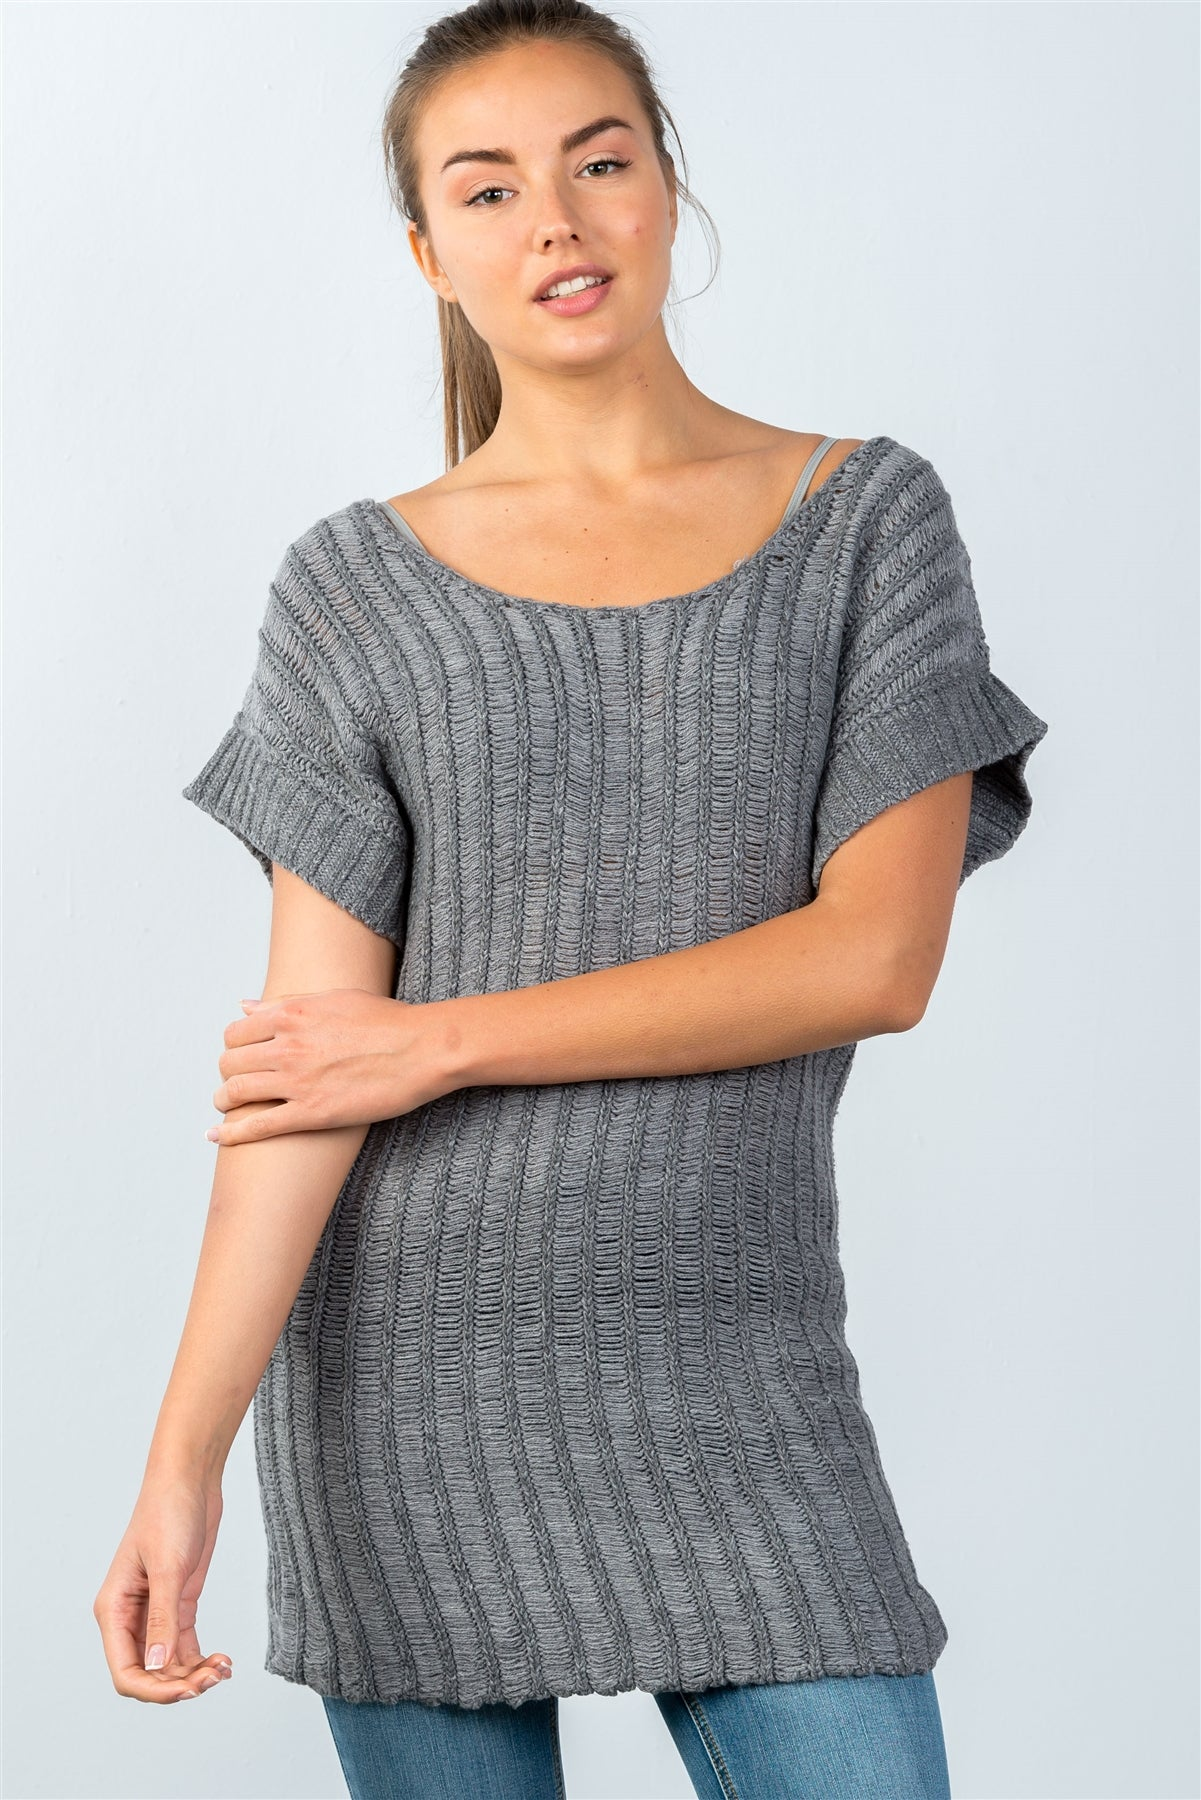 Ladies fashion scoop neckline short-sleeve open knit sweater -id.CC35749b - Creole Couture Boutique